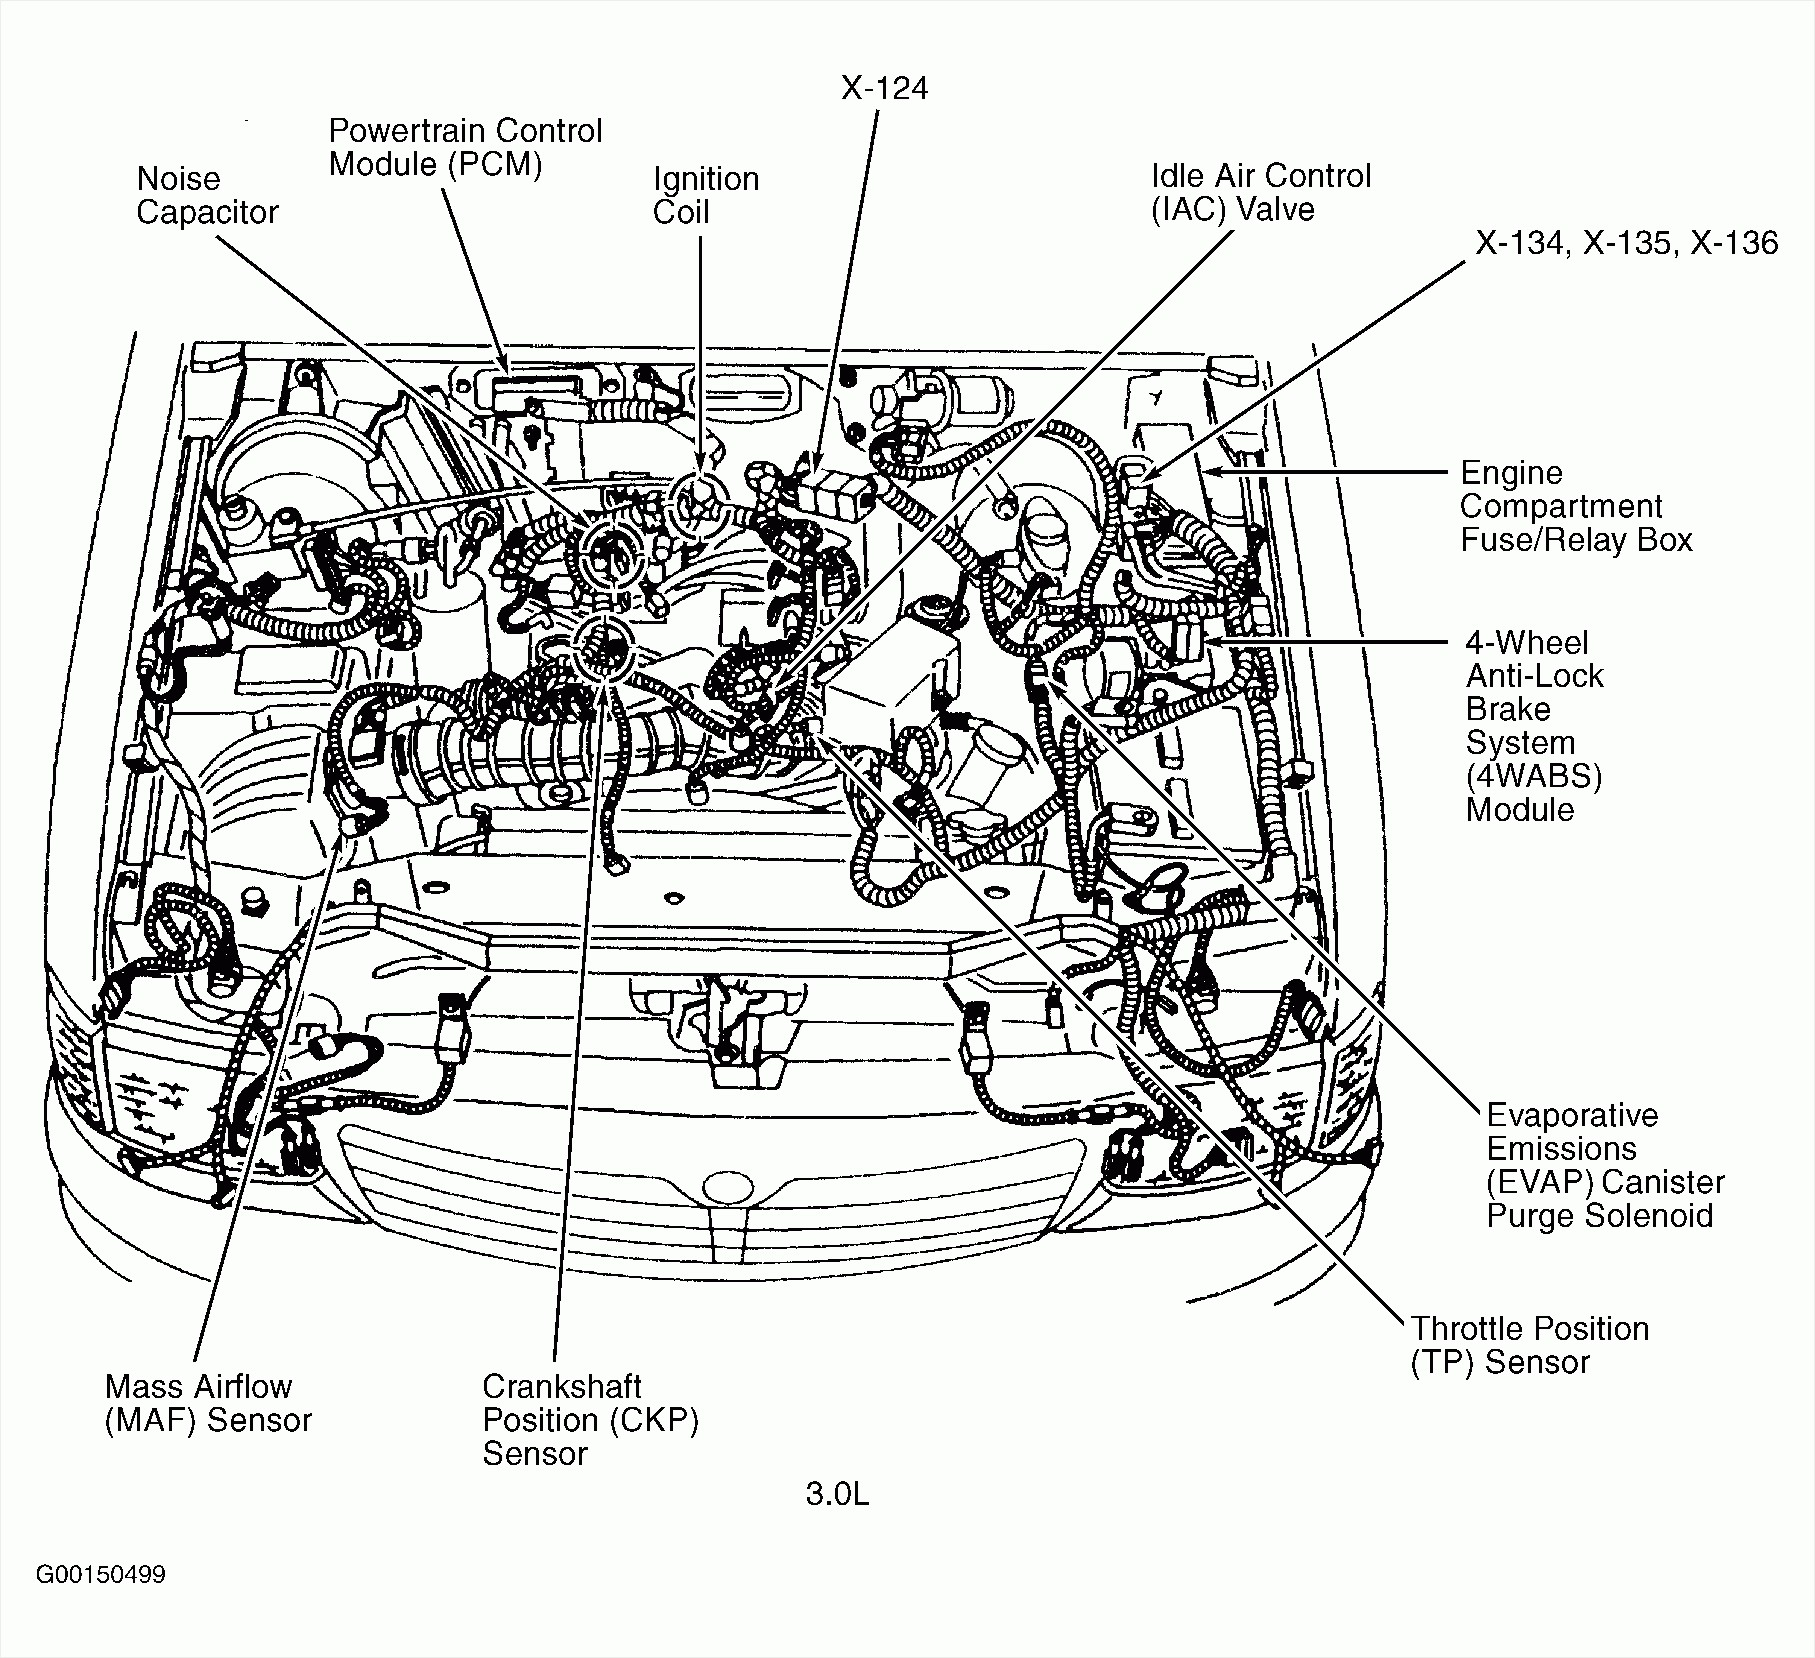 2001 jetta engine diagram full hd version engine diagram - lulu-diagram .tacchettidiferro.it  diagram database and images